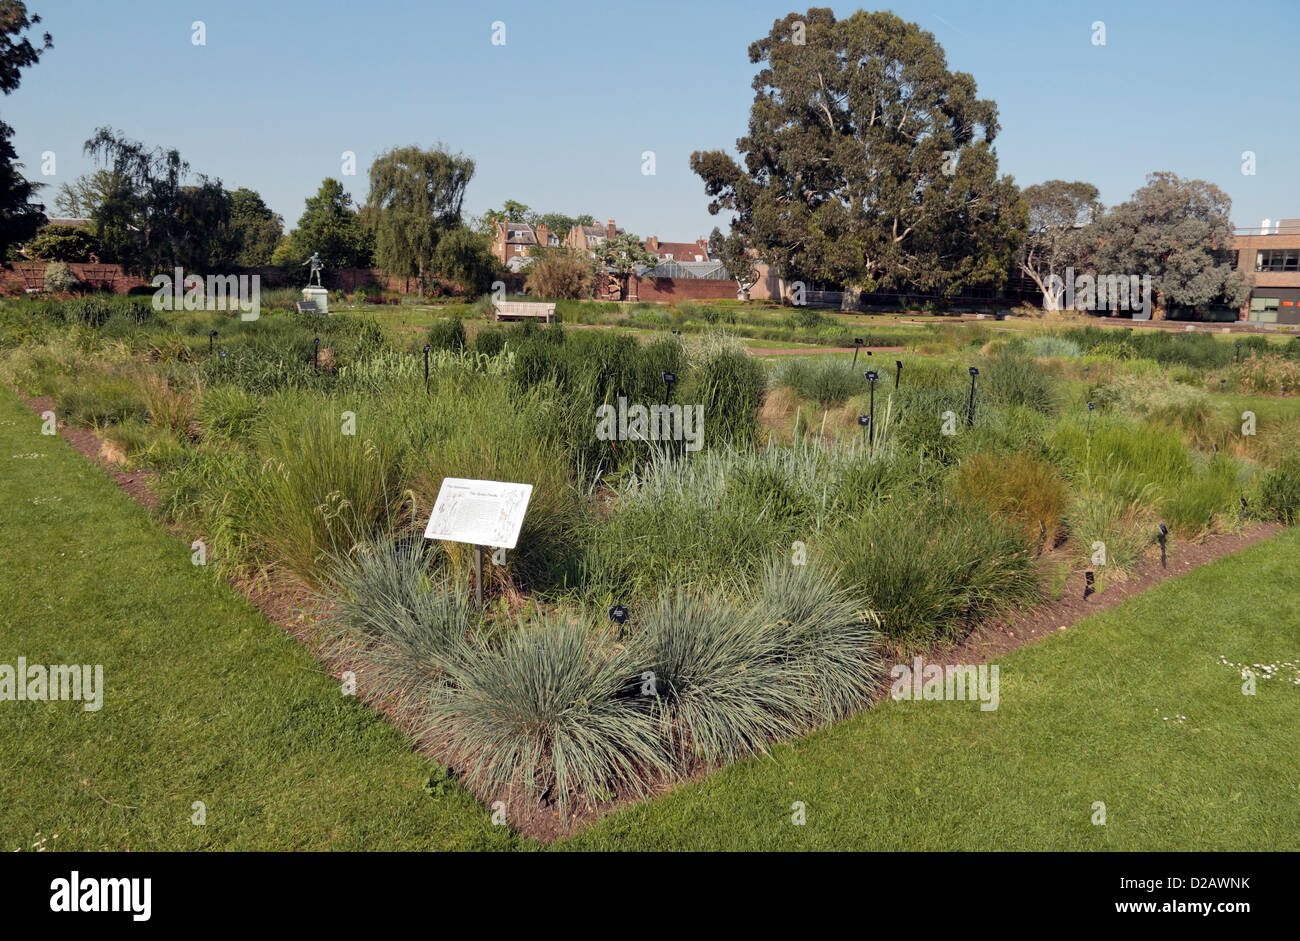 The Gramineae (The Grass Family) in the Order Beds in the Royal Botanic Gardens, Kew, London, UK. - Stock Image